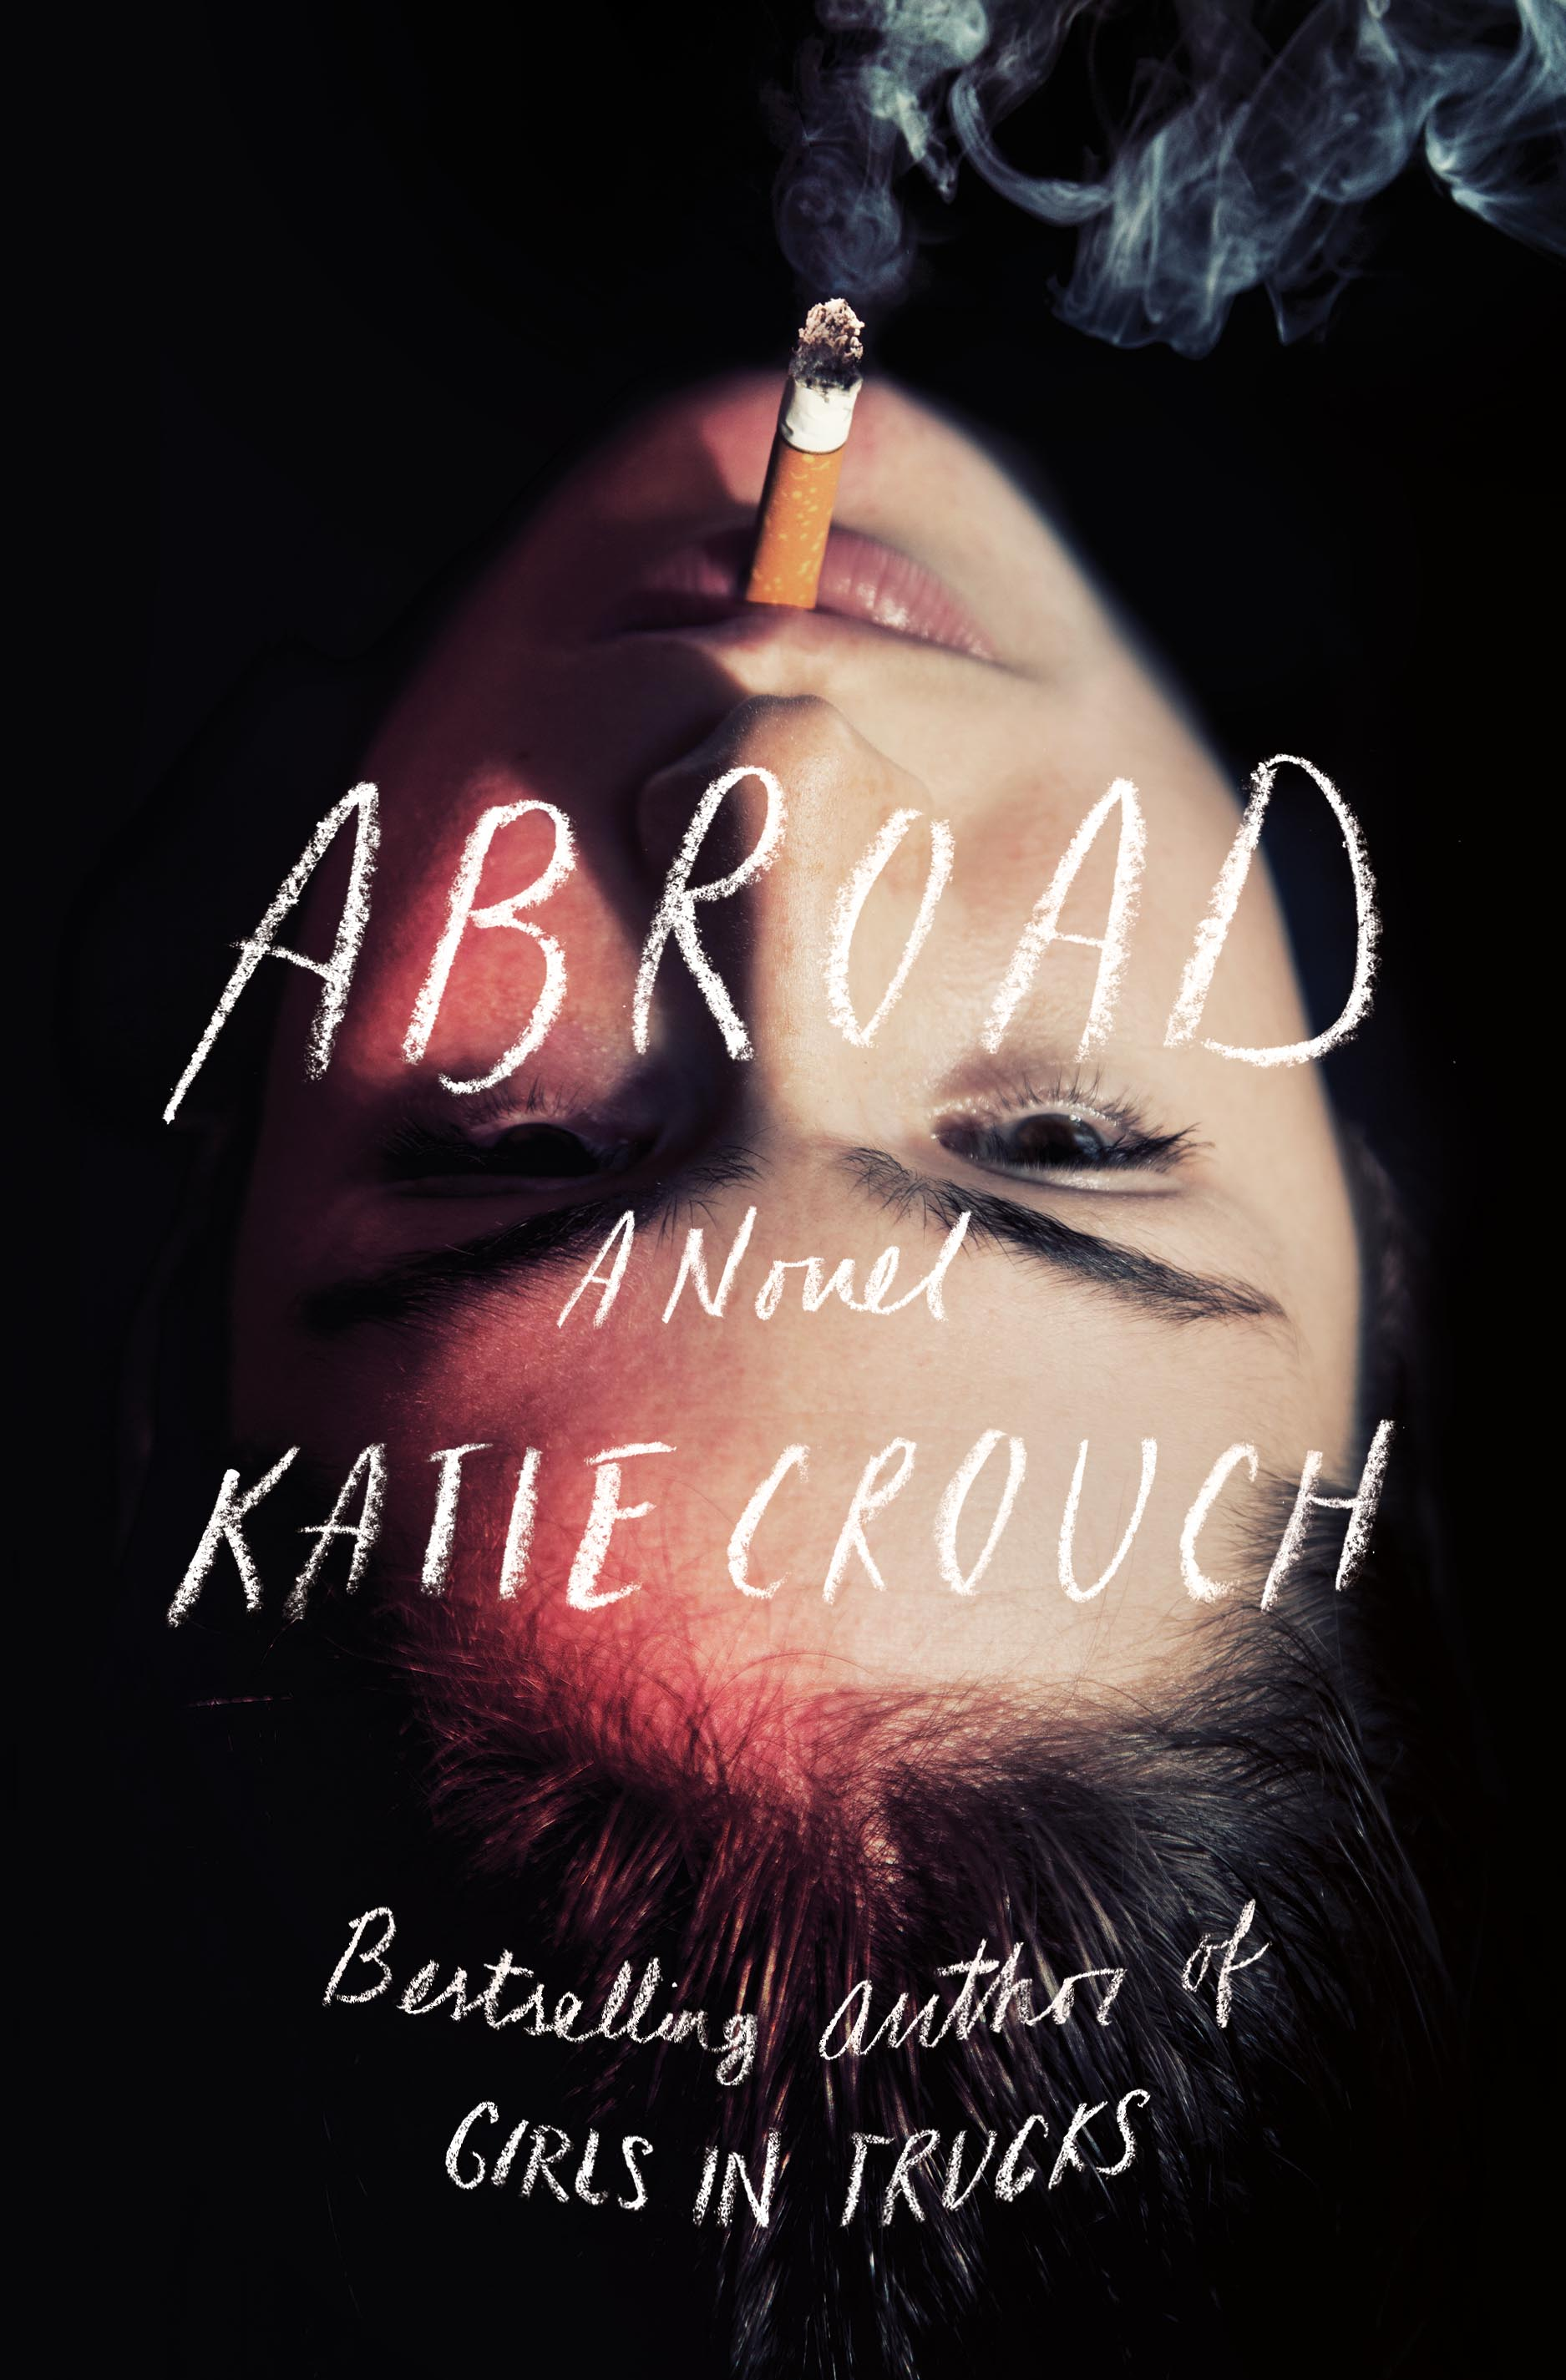 Abroad A Novel by Katie Crouch